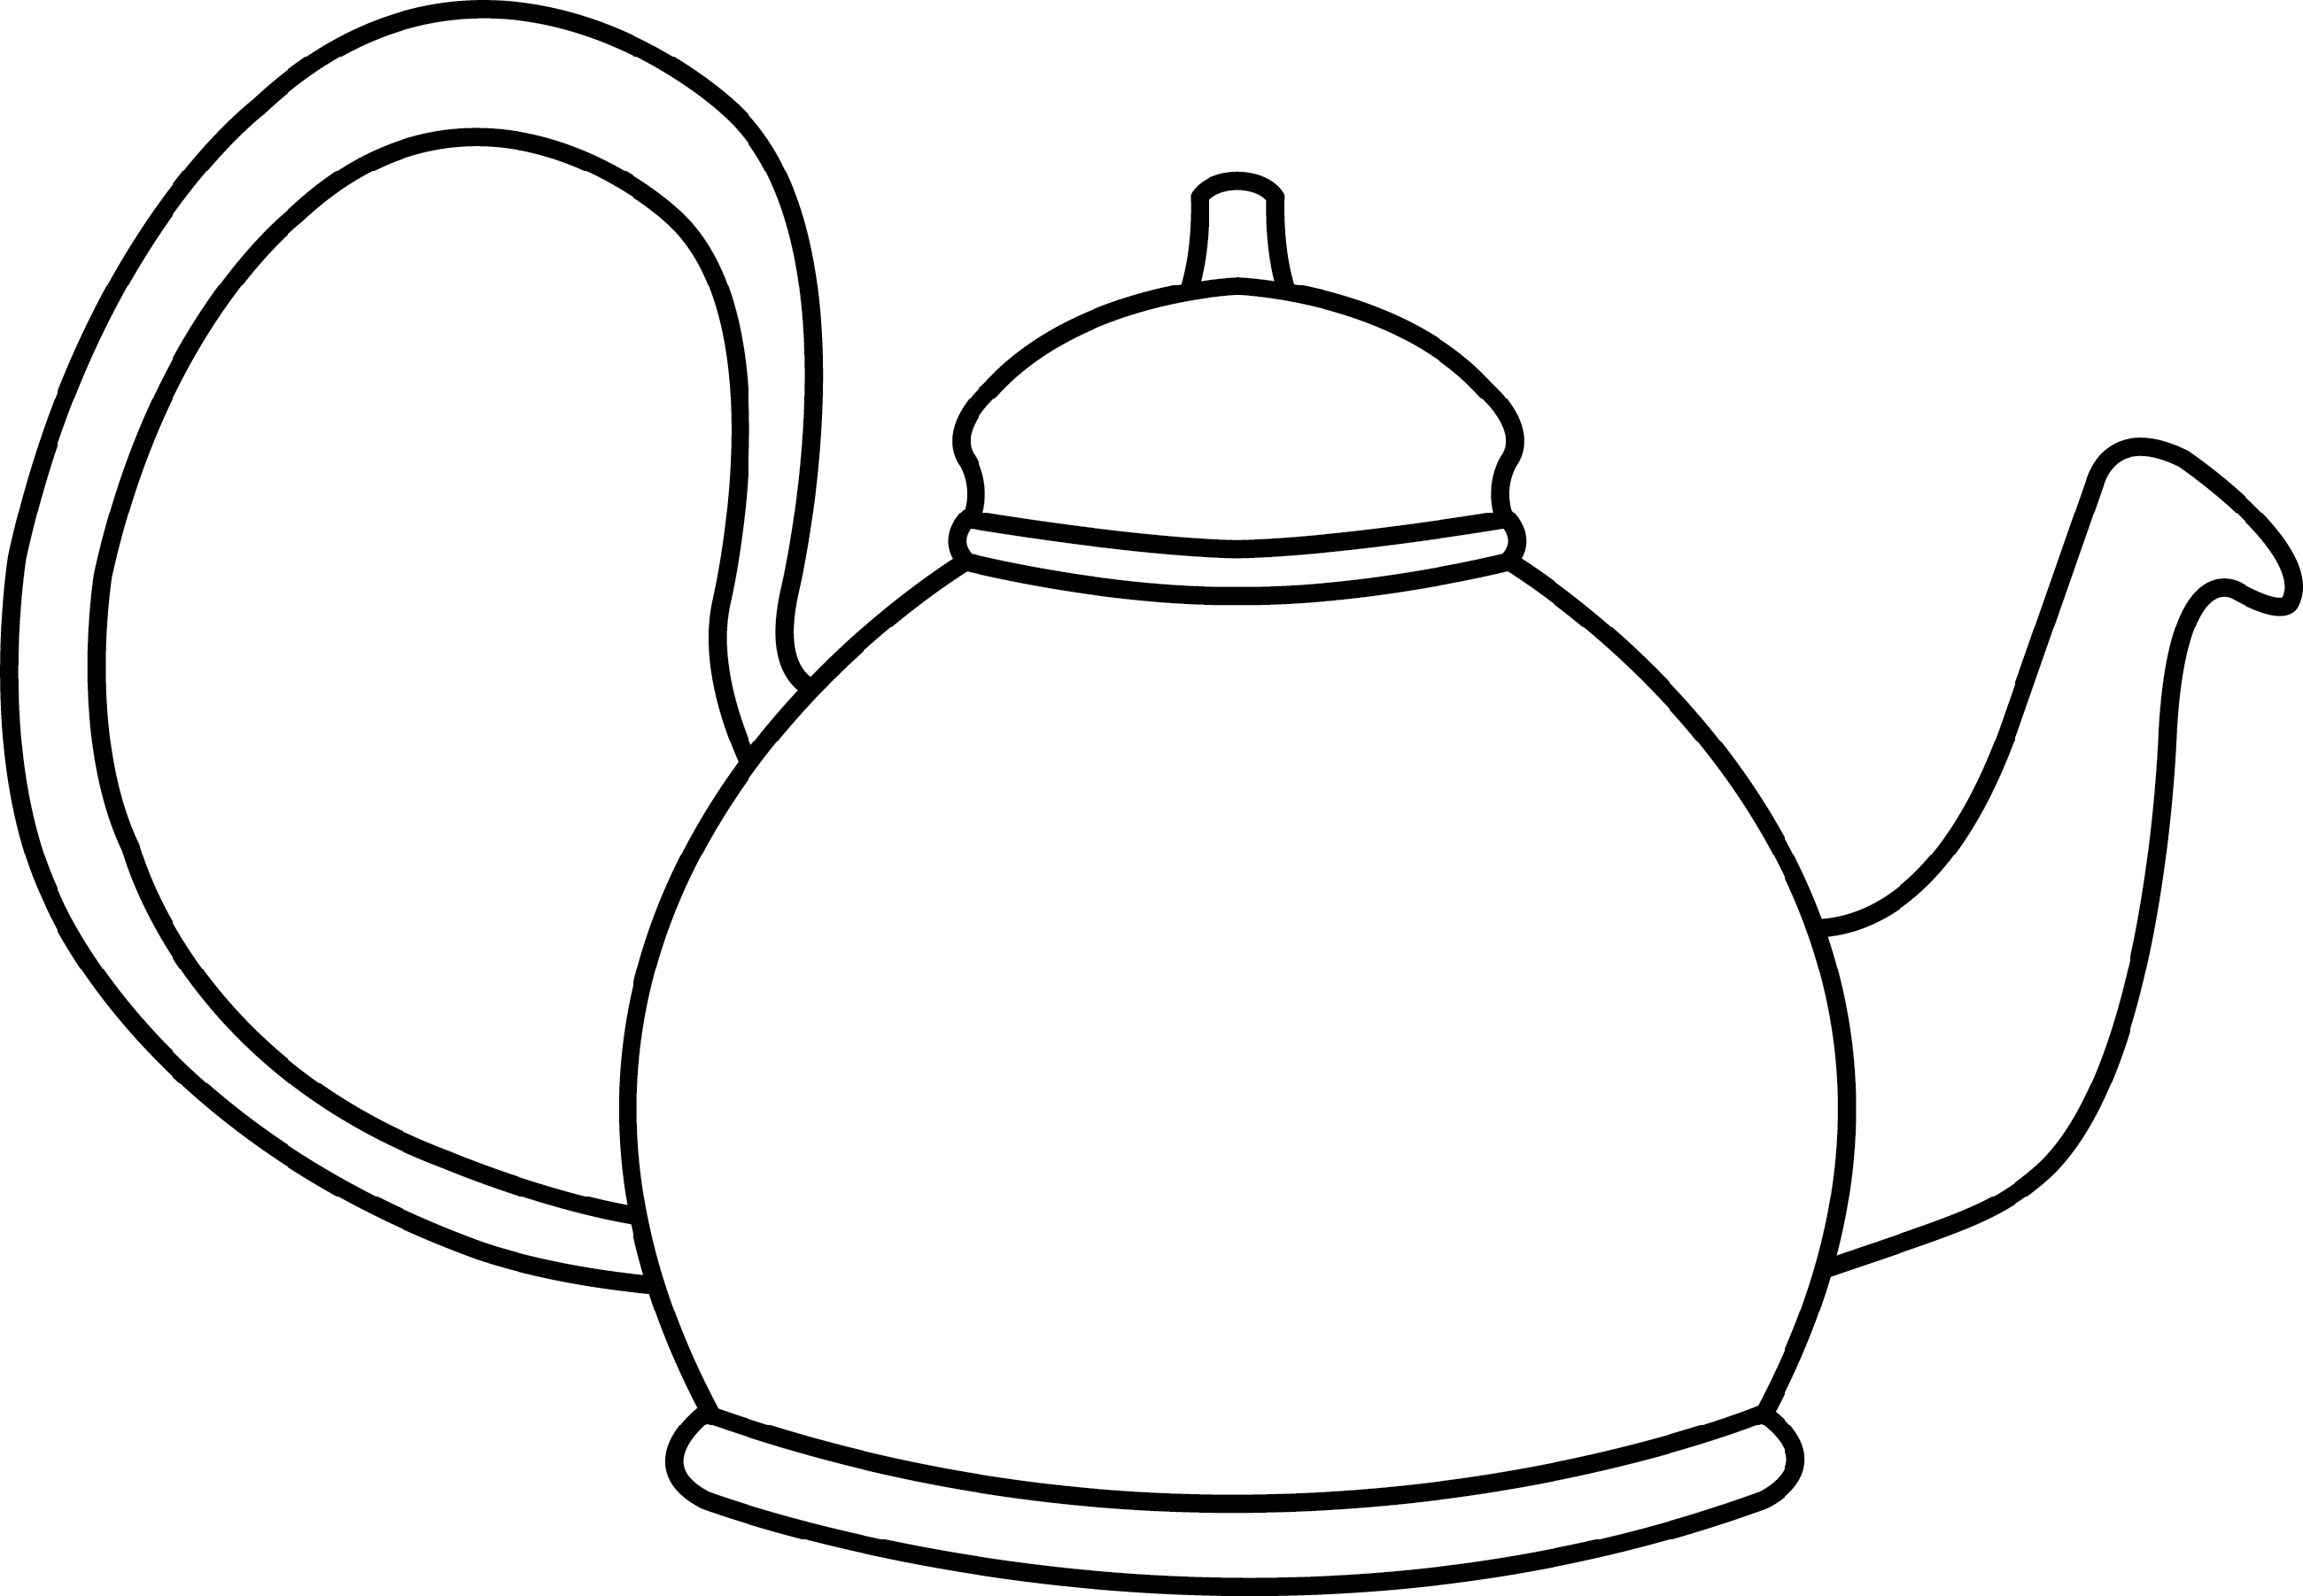 teapot coloring page 4